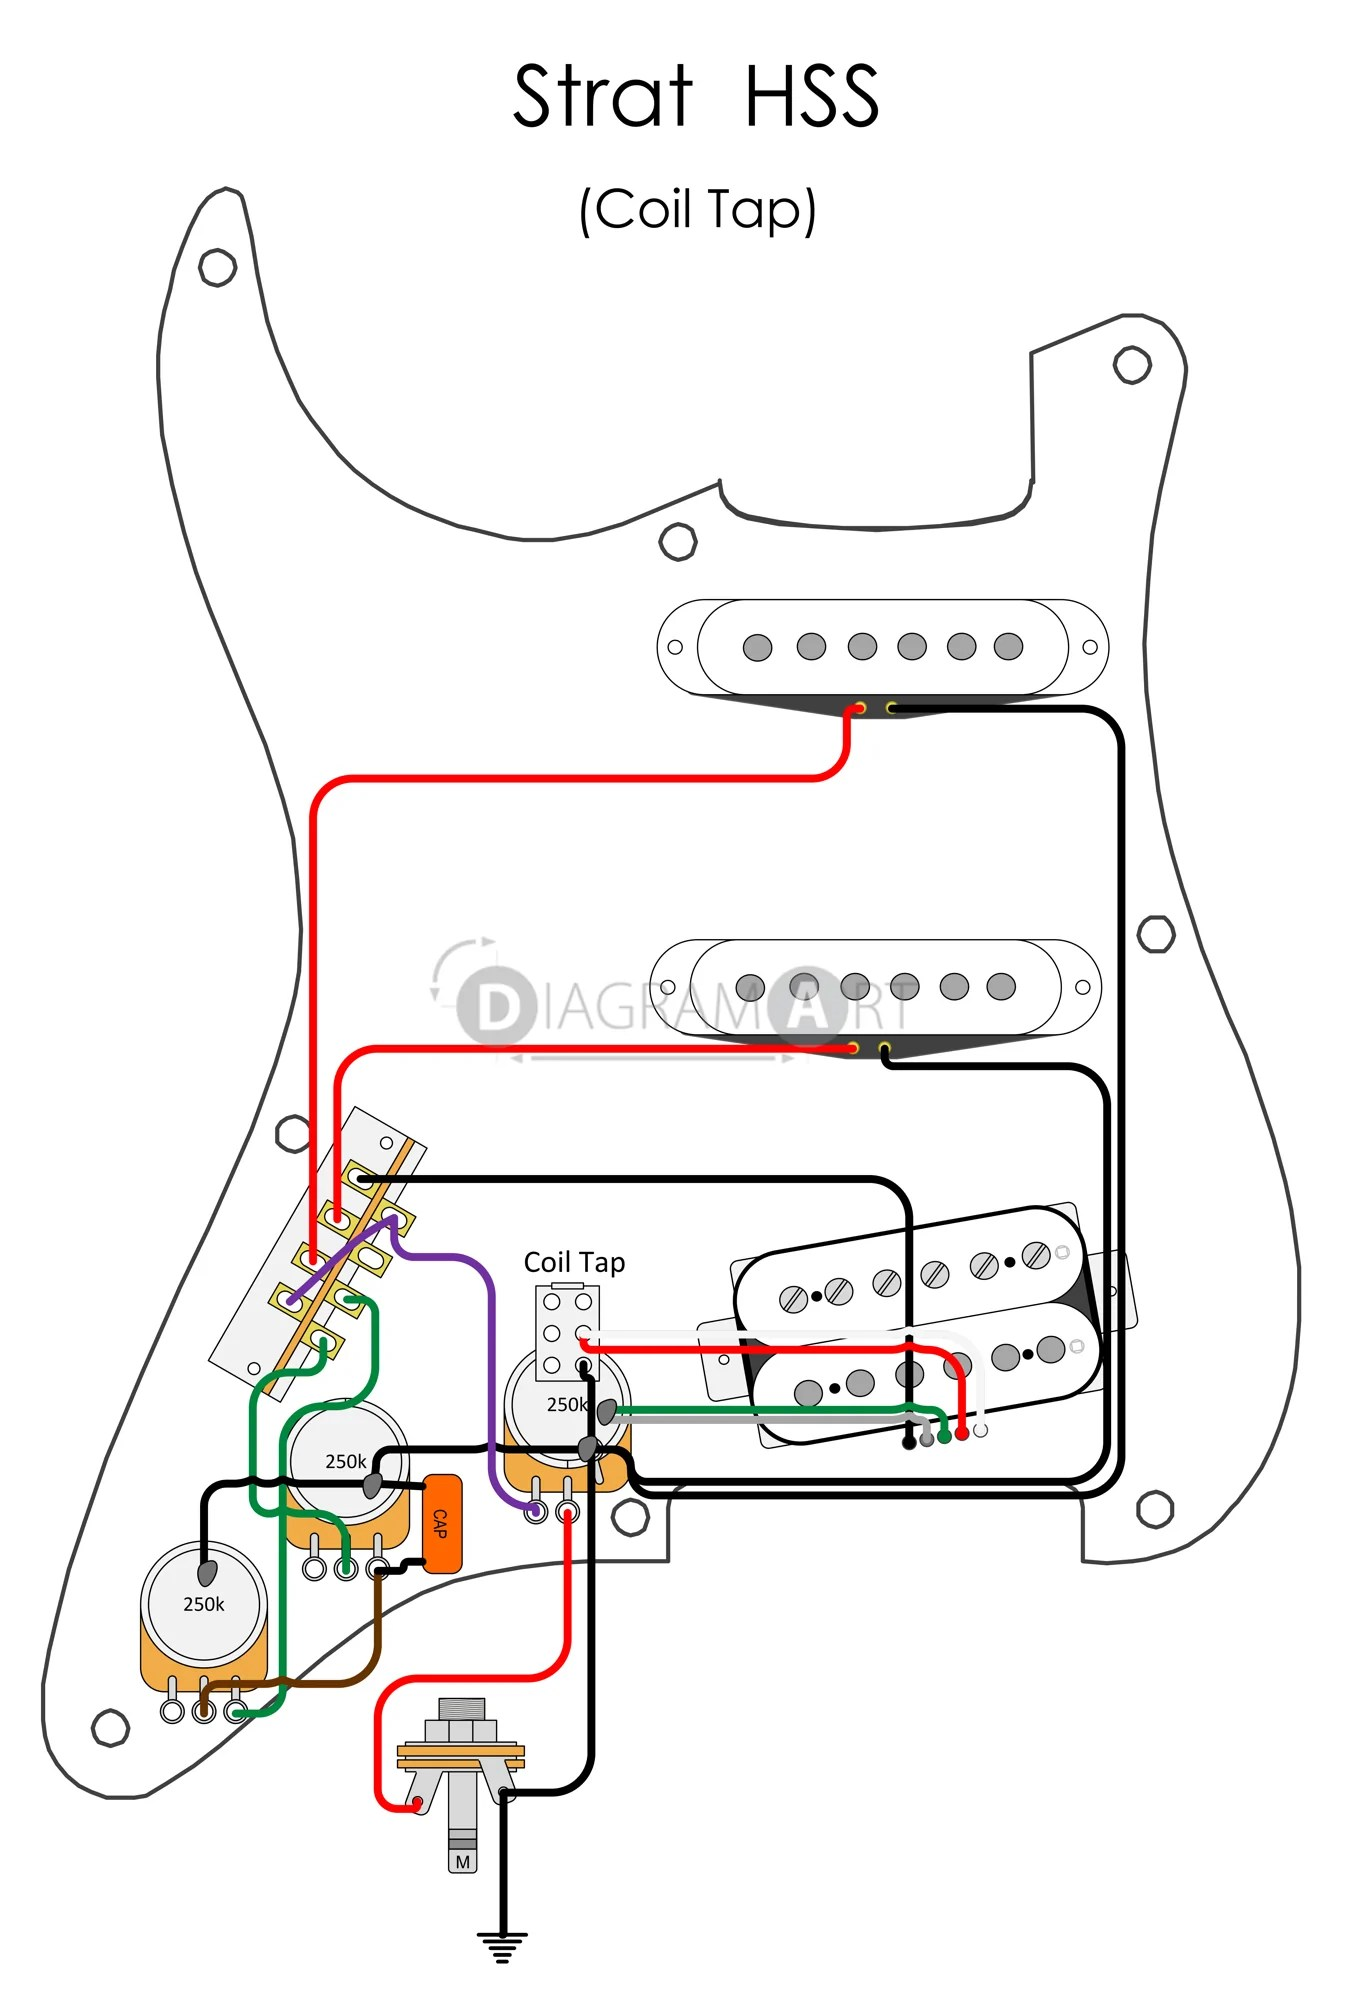 Electric Guitar Wiring: Strat HSS (Coil Tap) [Electric